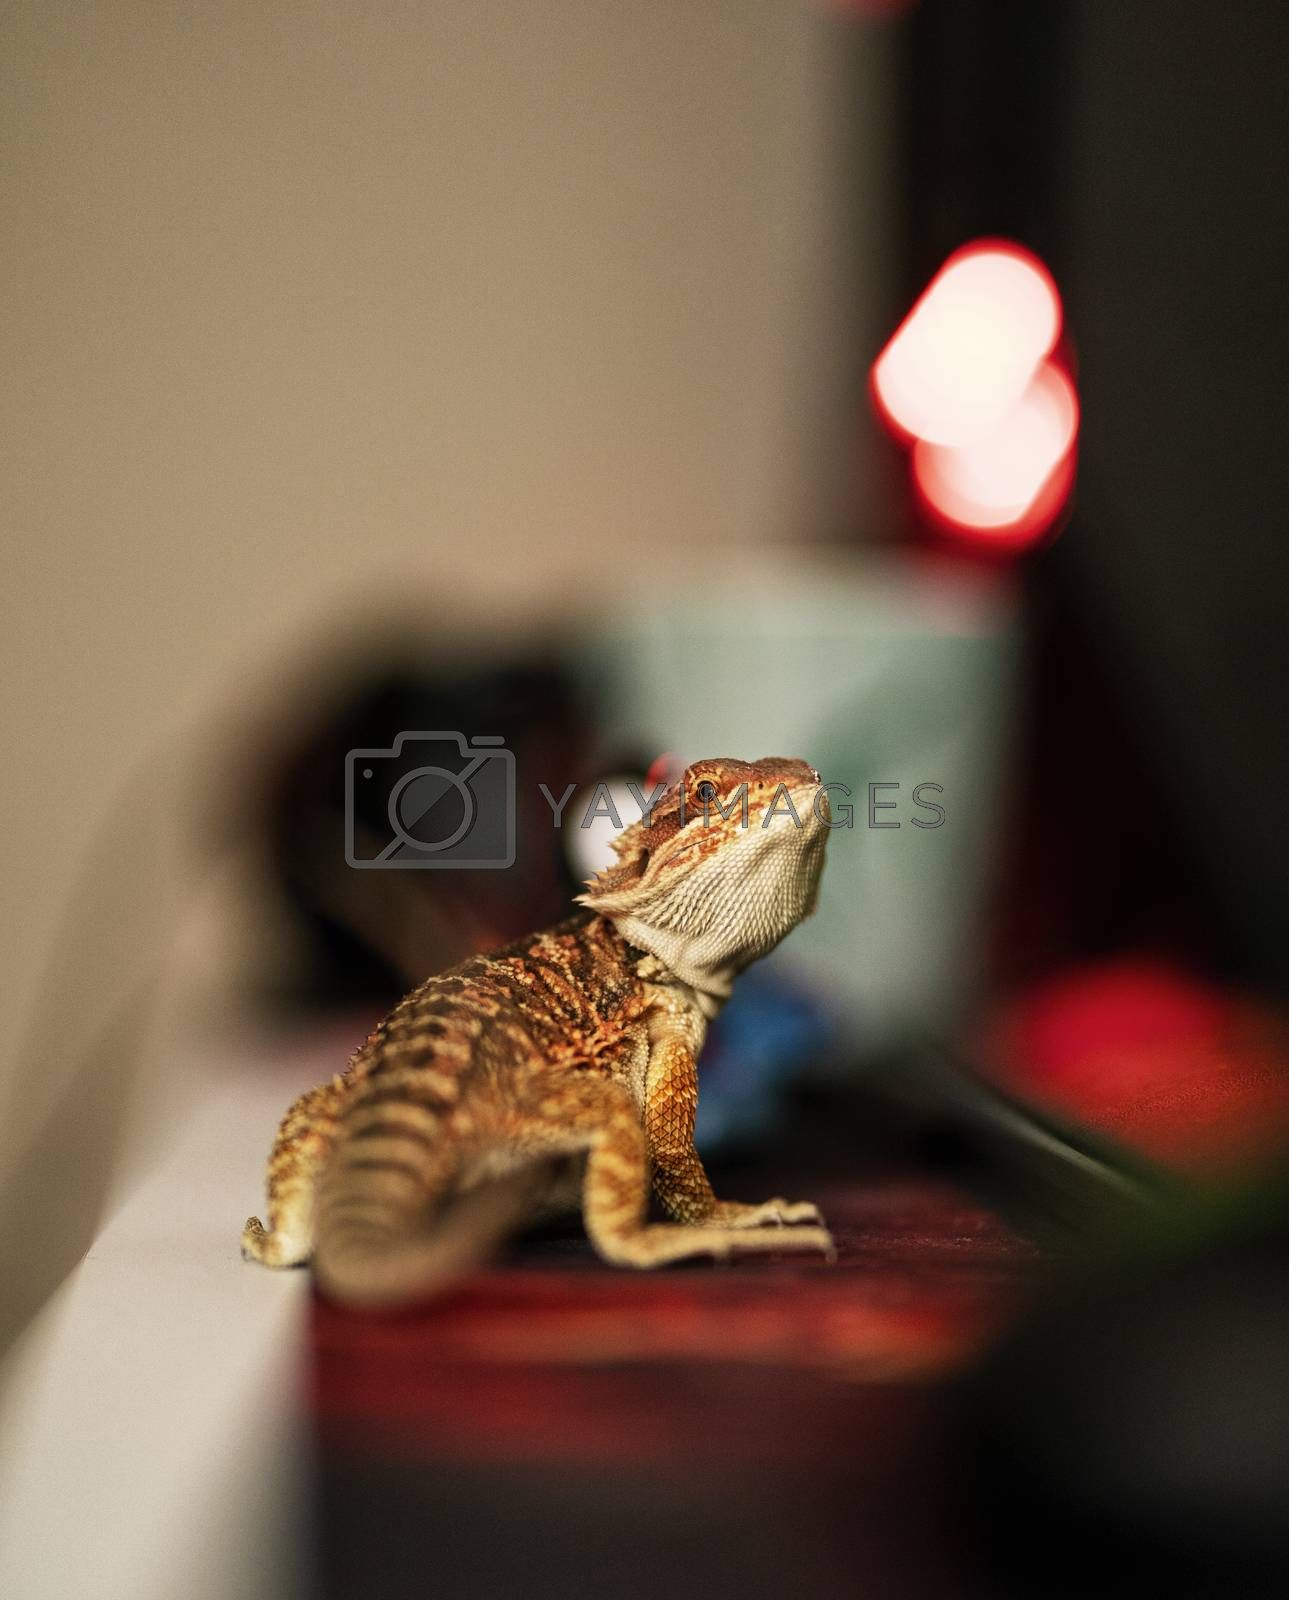 Young bearded dragon in focus with a blurry background, standing on a desk turned and looking at the camera.